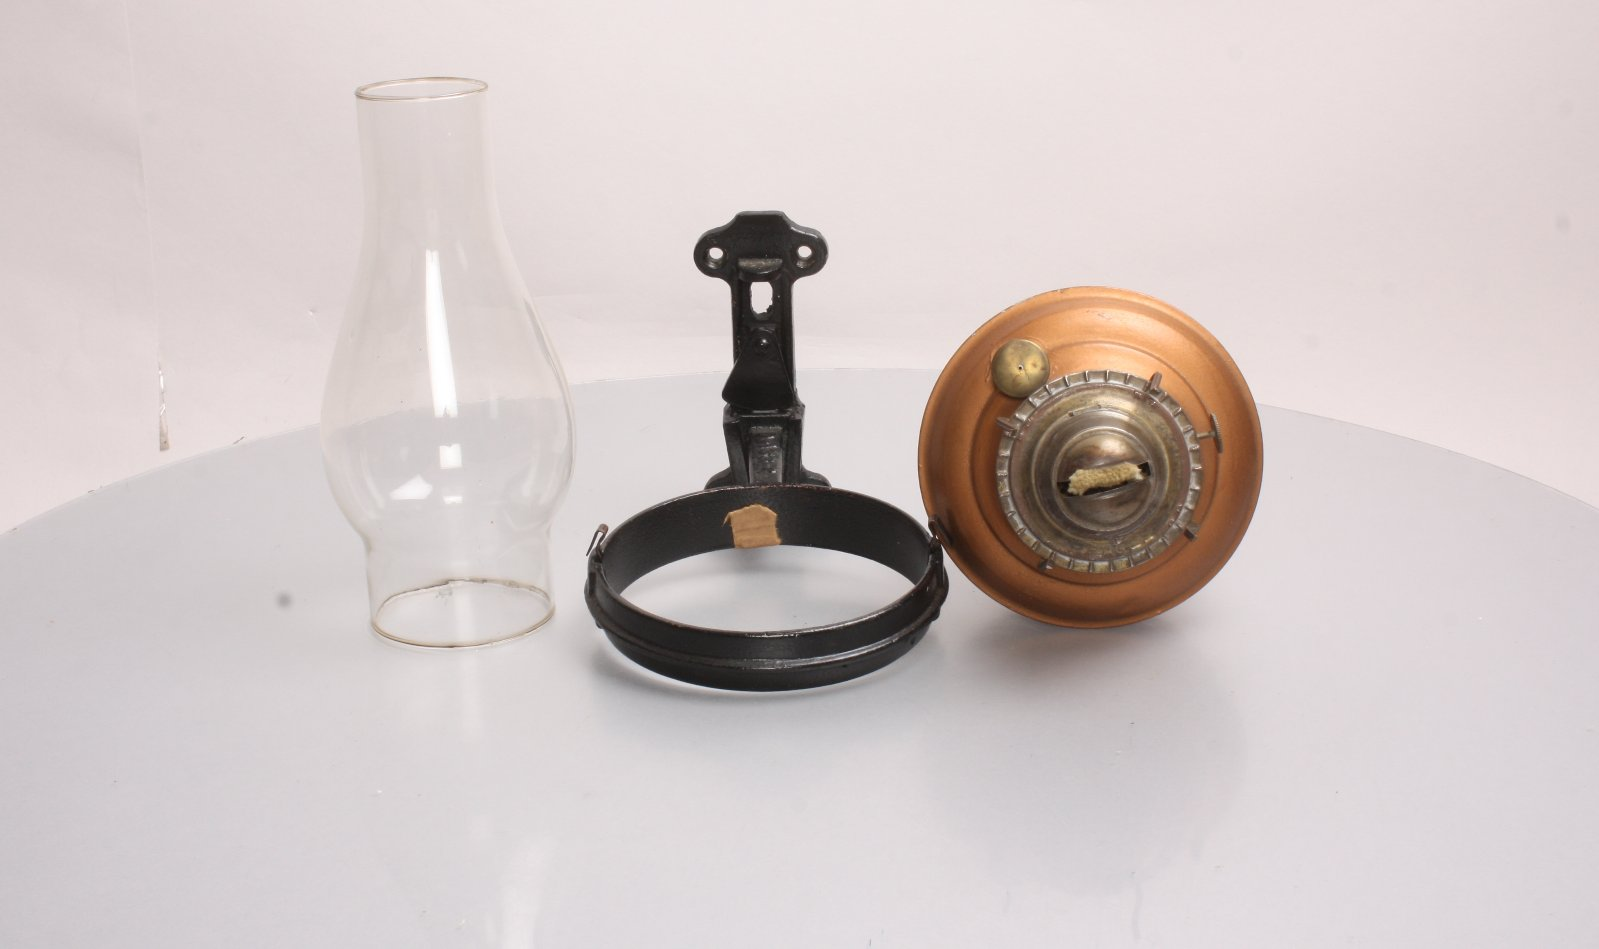 Vintage NEW York Central Wall Mounted Hurricane OIL Lamp eBay